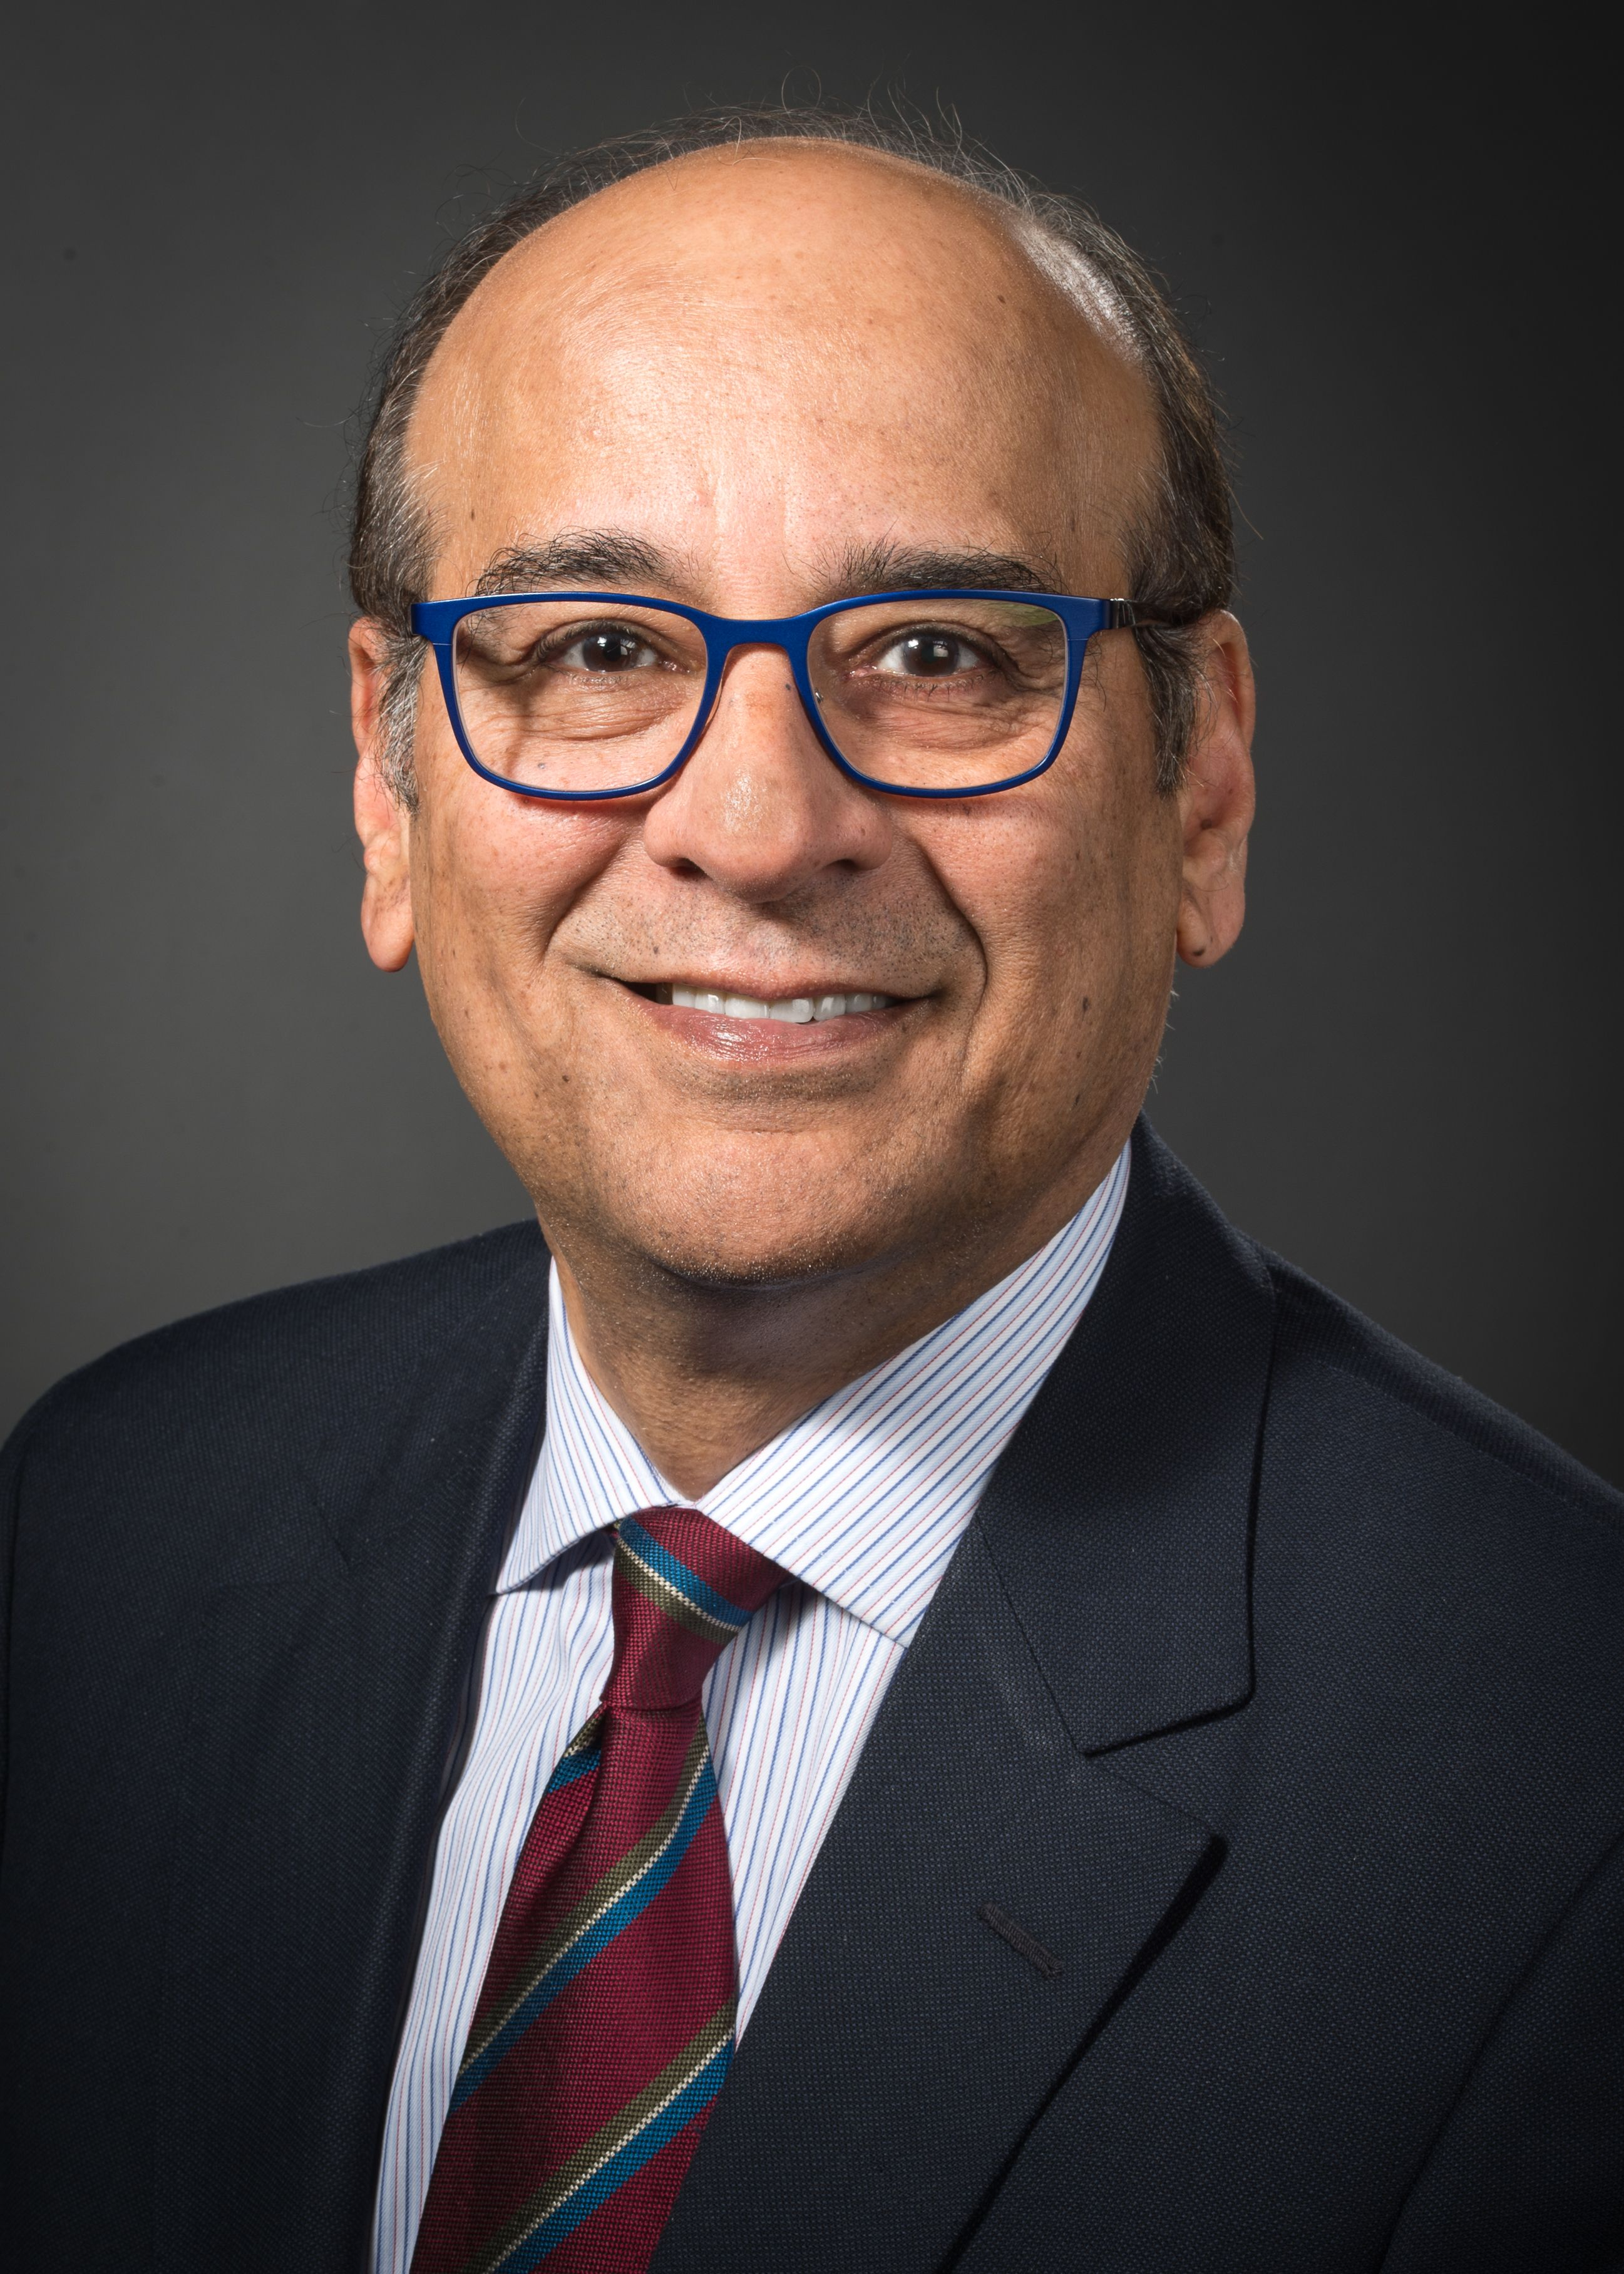 Raj Narayan, MD, head shot wearing a maroon tie with blue stripes and blue glasses